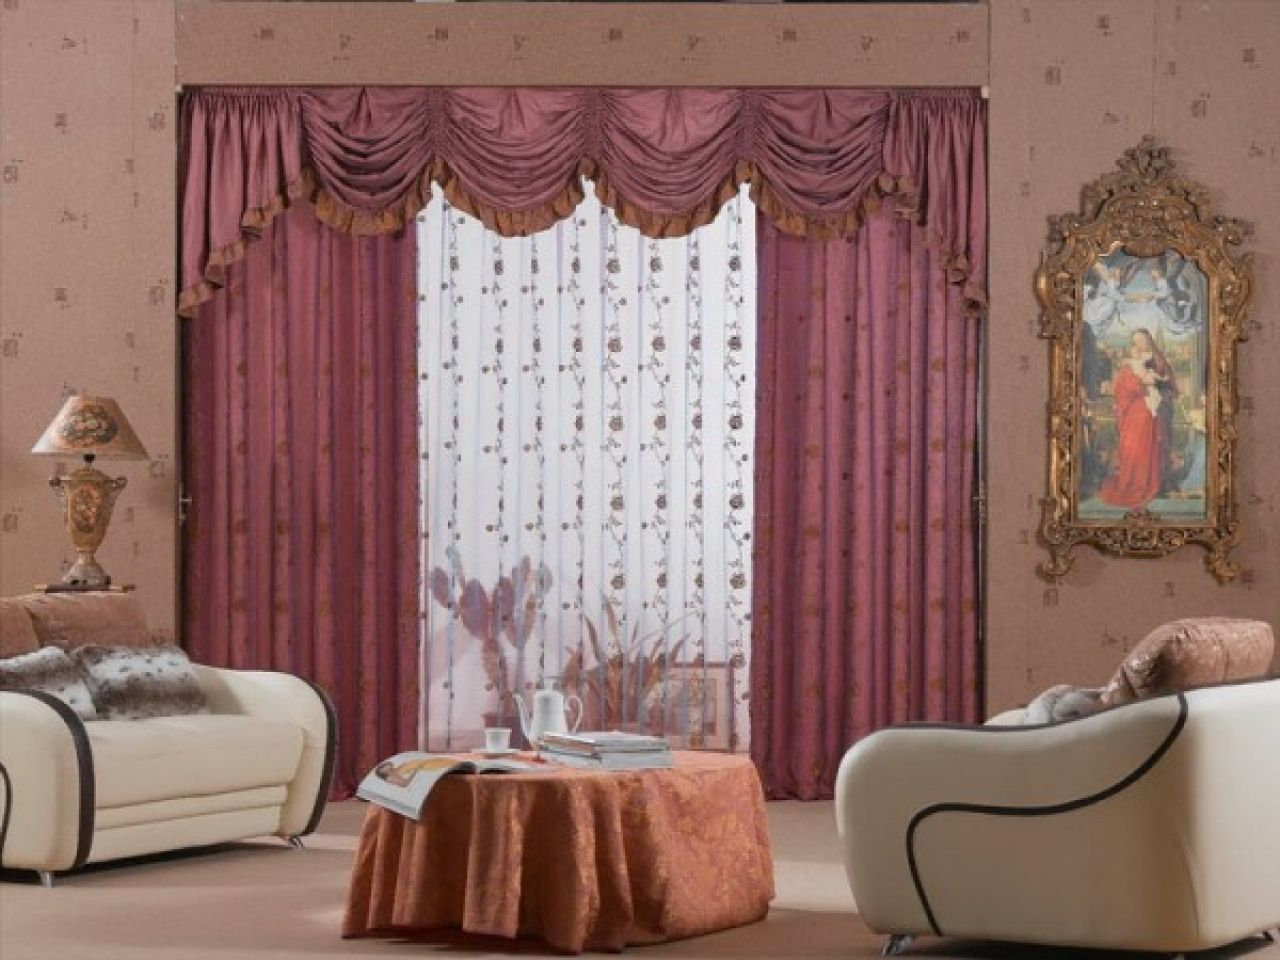 Living Room Curtain Designs Fascinating Pinpavlina Dimitrova On Пердета И Щори  Pinterest Review